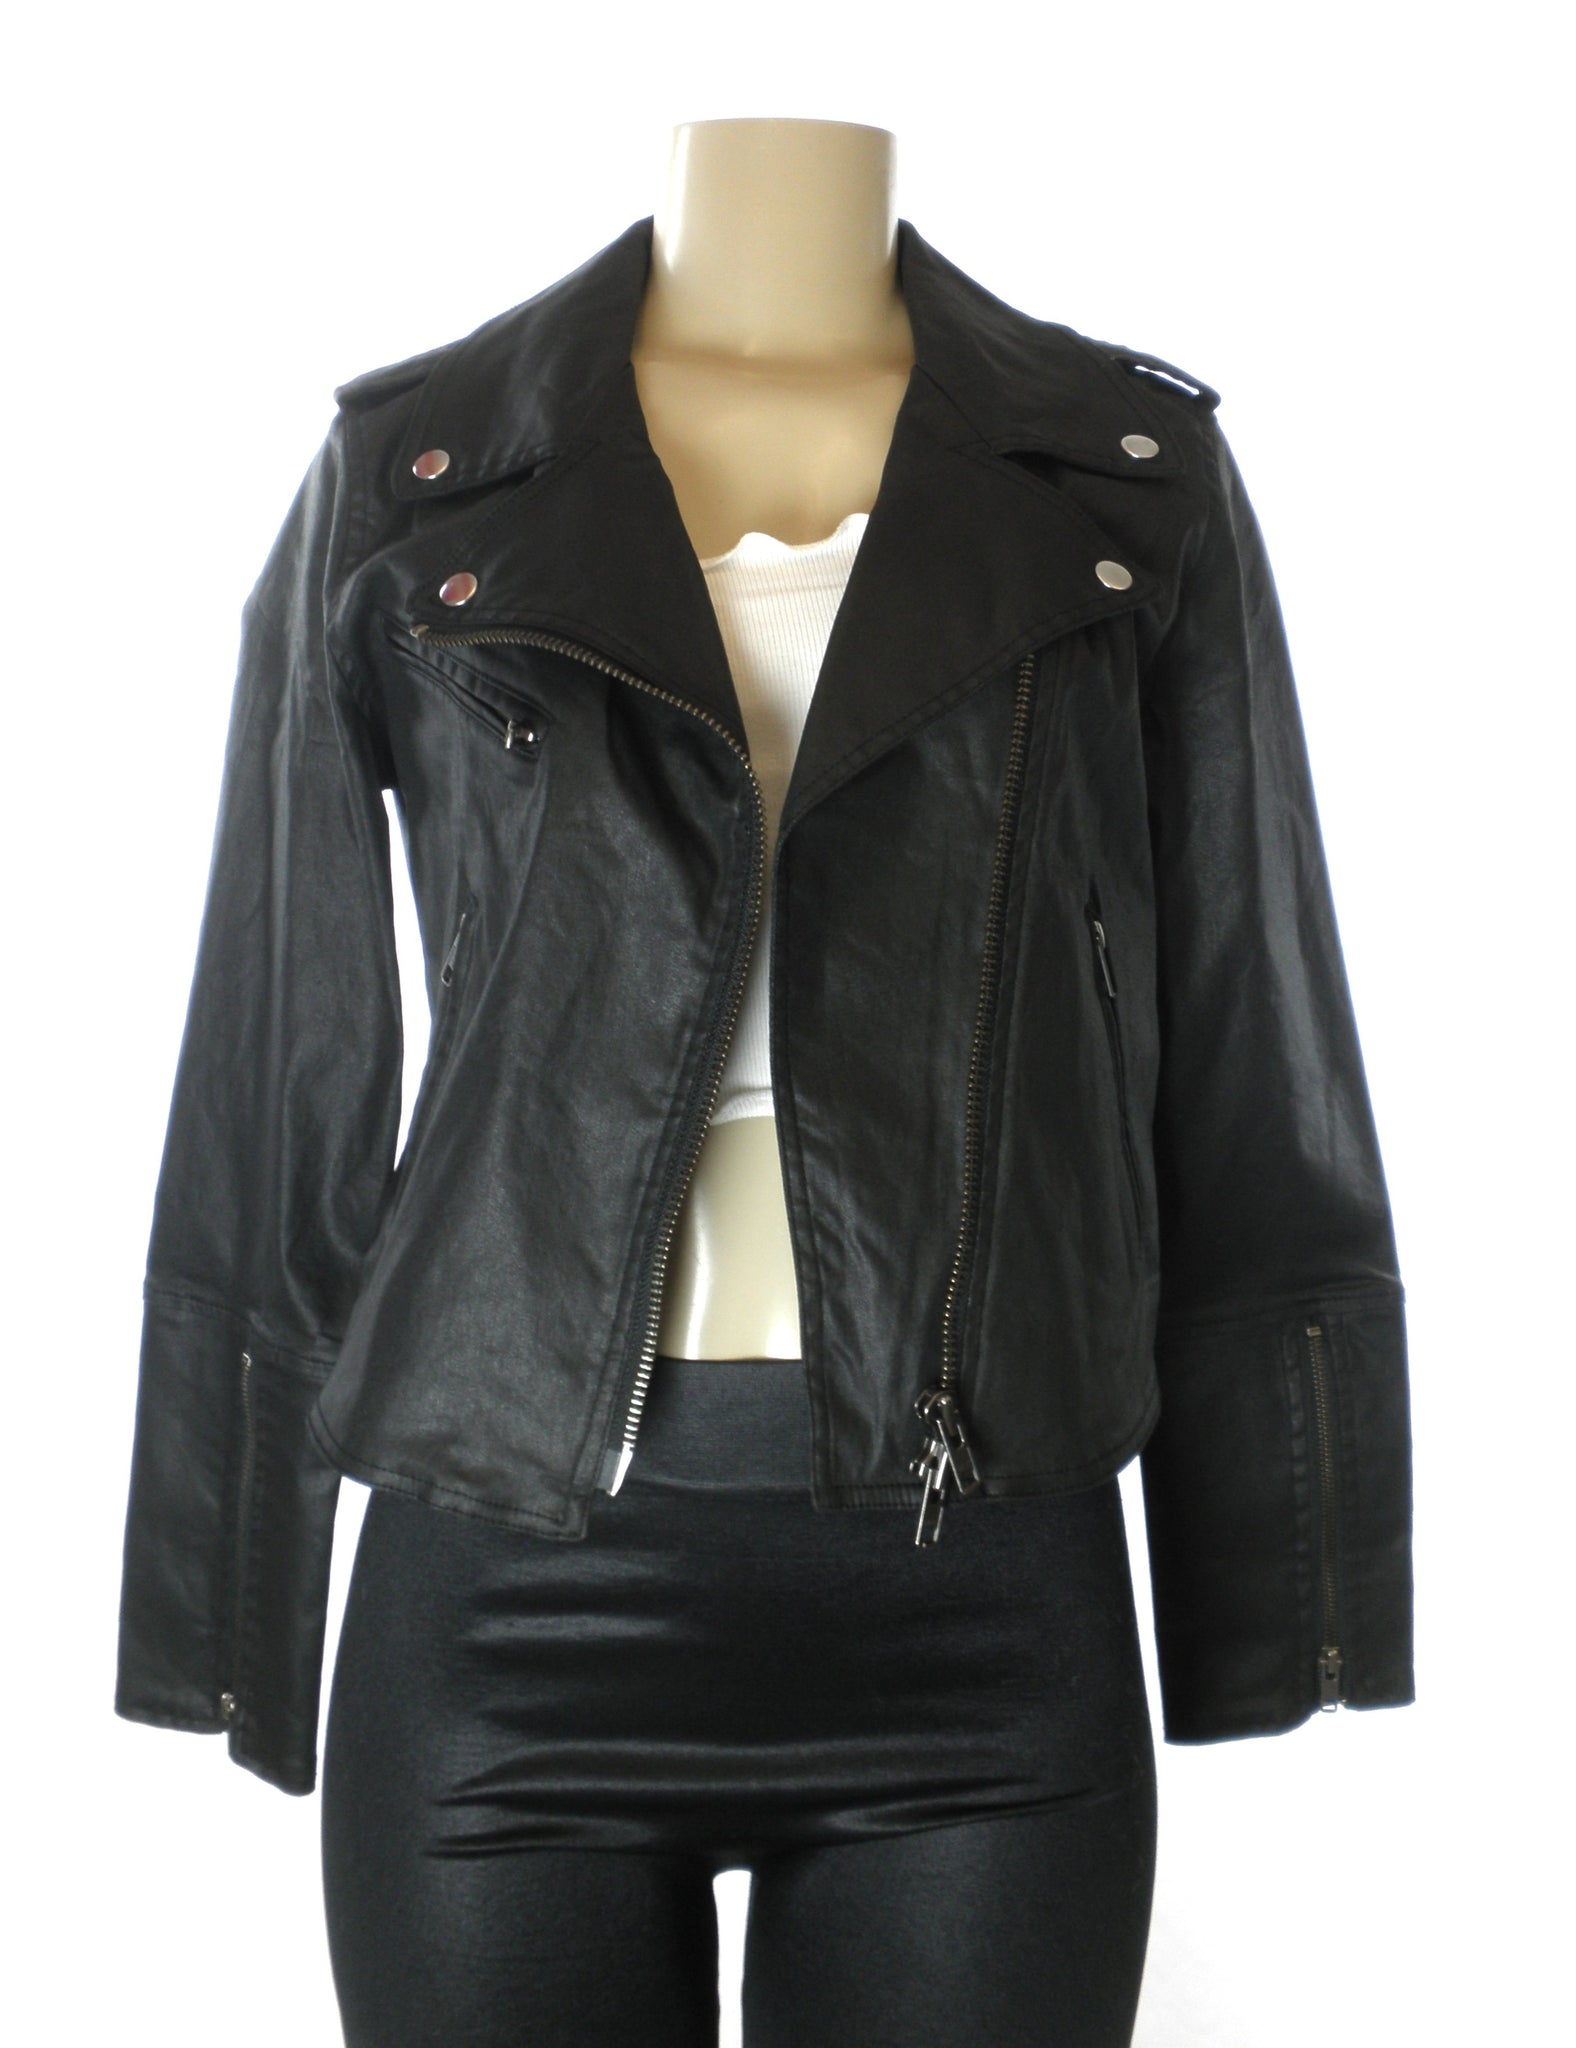 Rebecca Minkoff Black Faux Leather Jacket Size XS,S Donated From The Designer